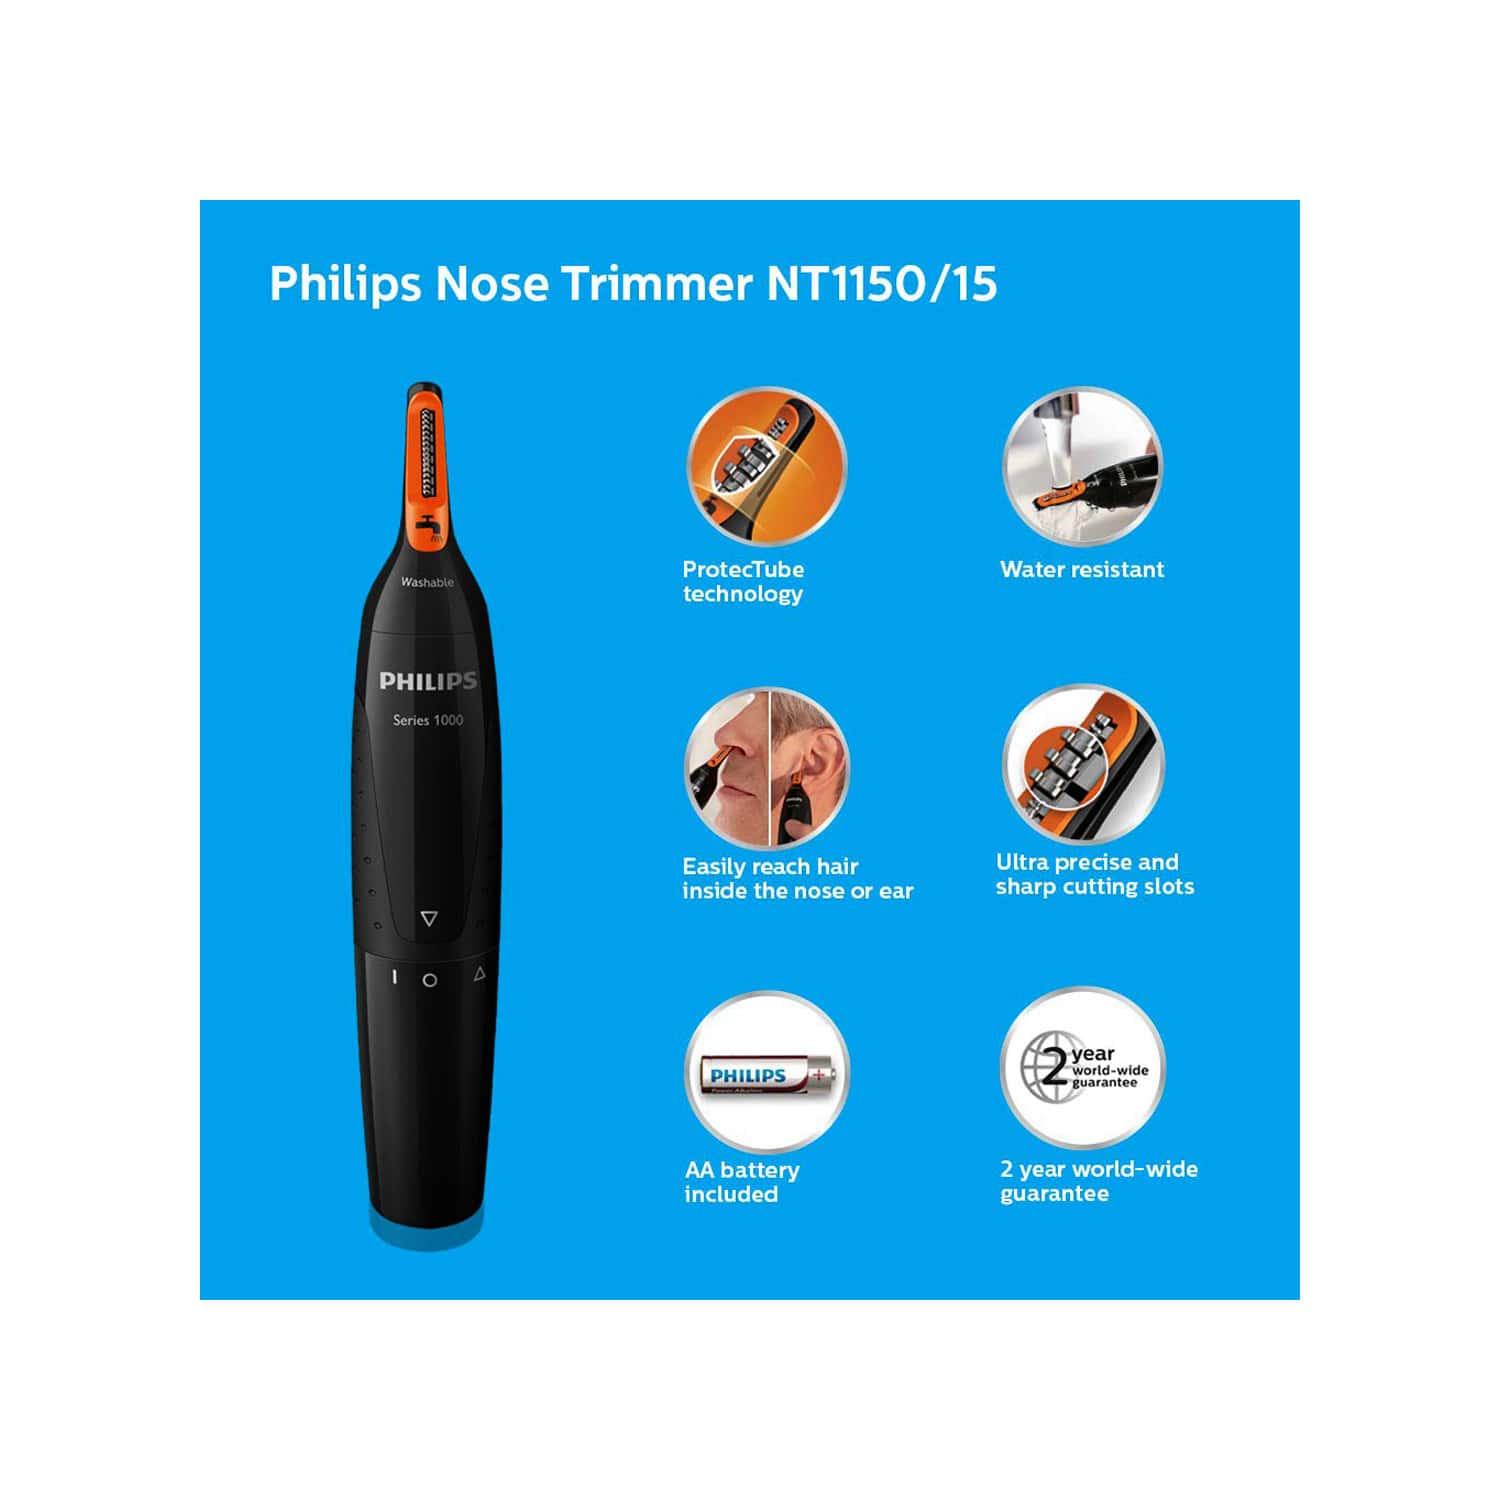 Philips Nt1150/10 Nose Trimmer (black)